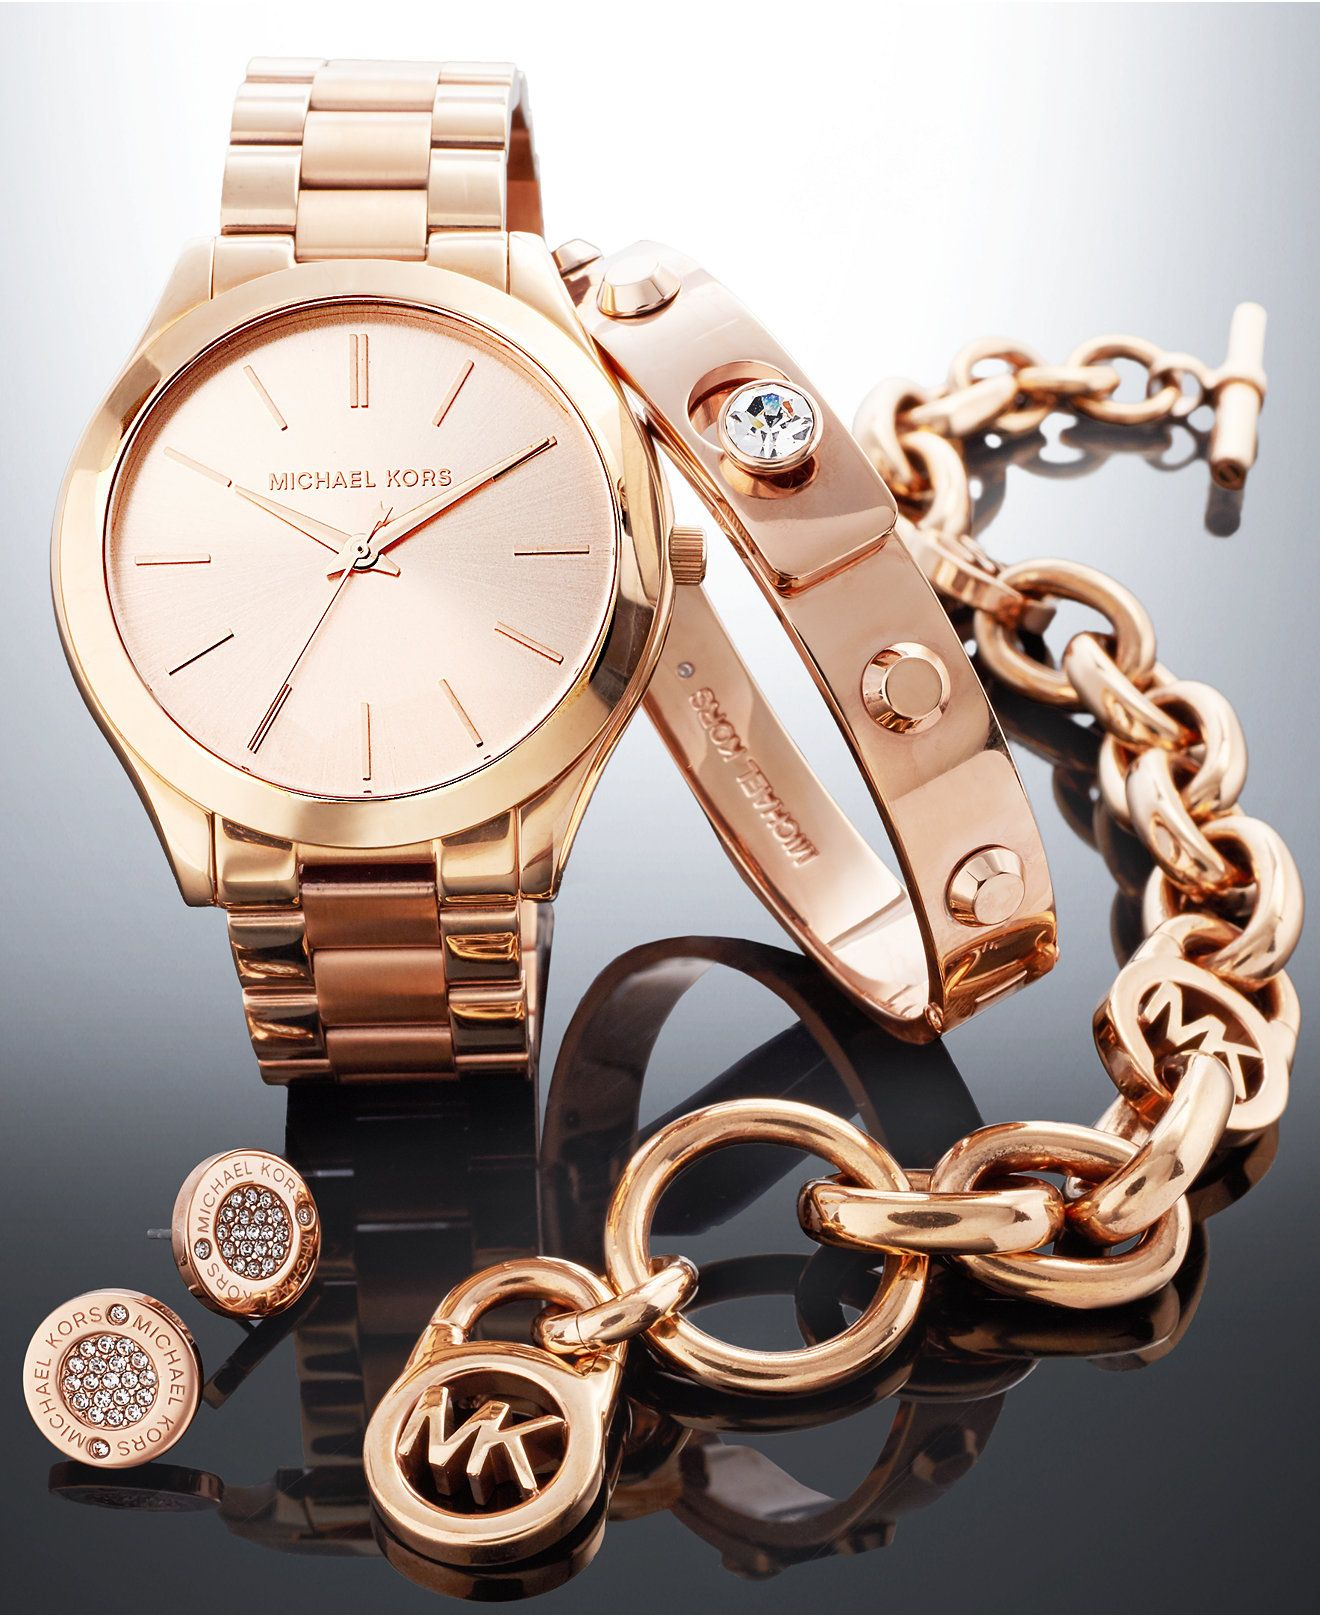 Michael Kors Rose Gold Tone Gift Set Women S Watches Jewelry Watches Macy S Michael Kors Rose Gold Women S Accessories Fashion Jewelry